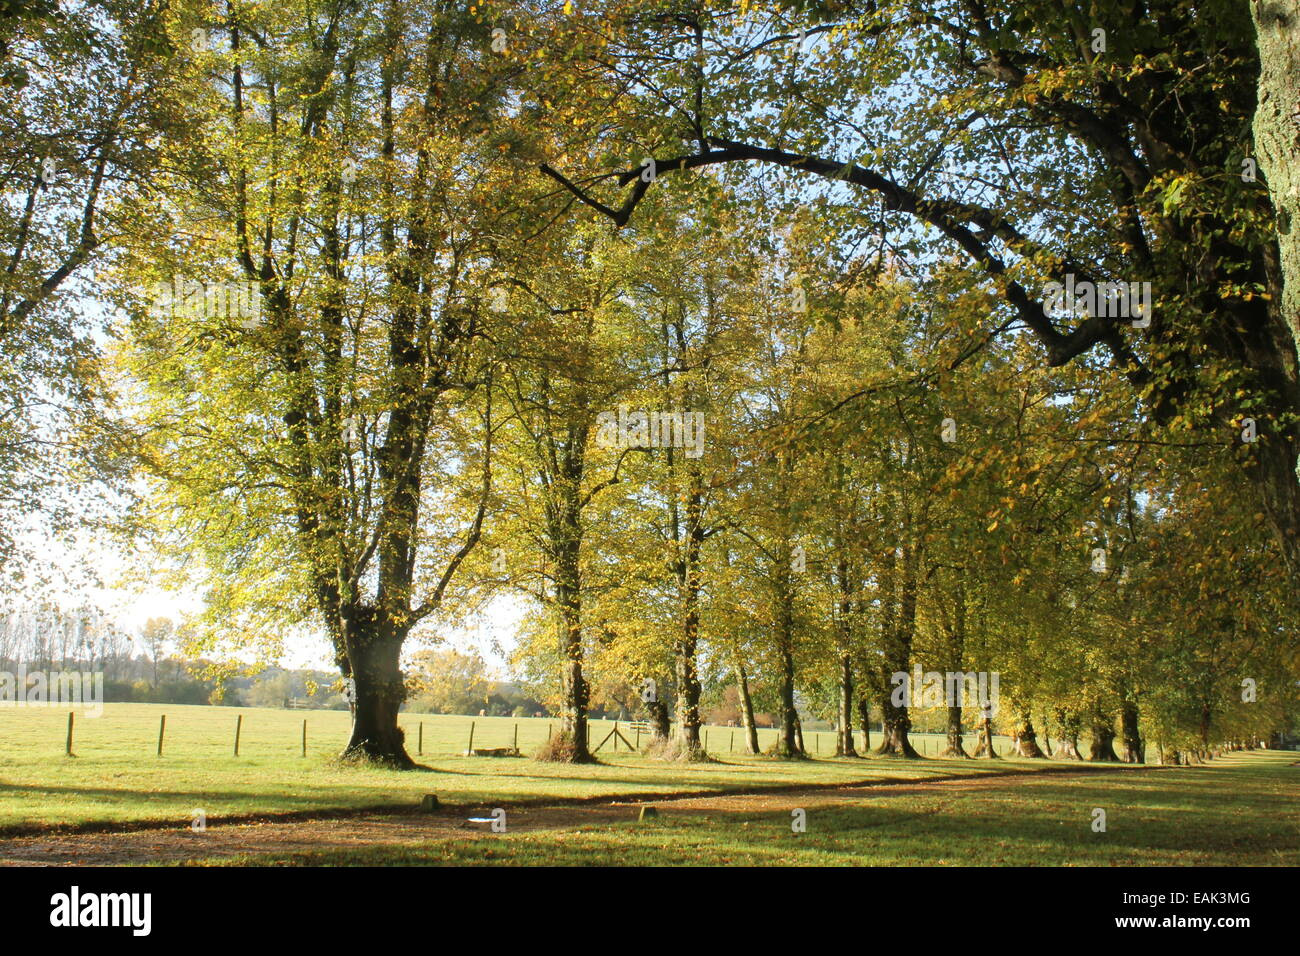 Avenue of trees at Hale Park, near Woodgreen, Fordingbridge, Hampshire, England UK, in the New Forest National Park - Stock Image